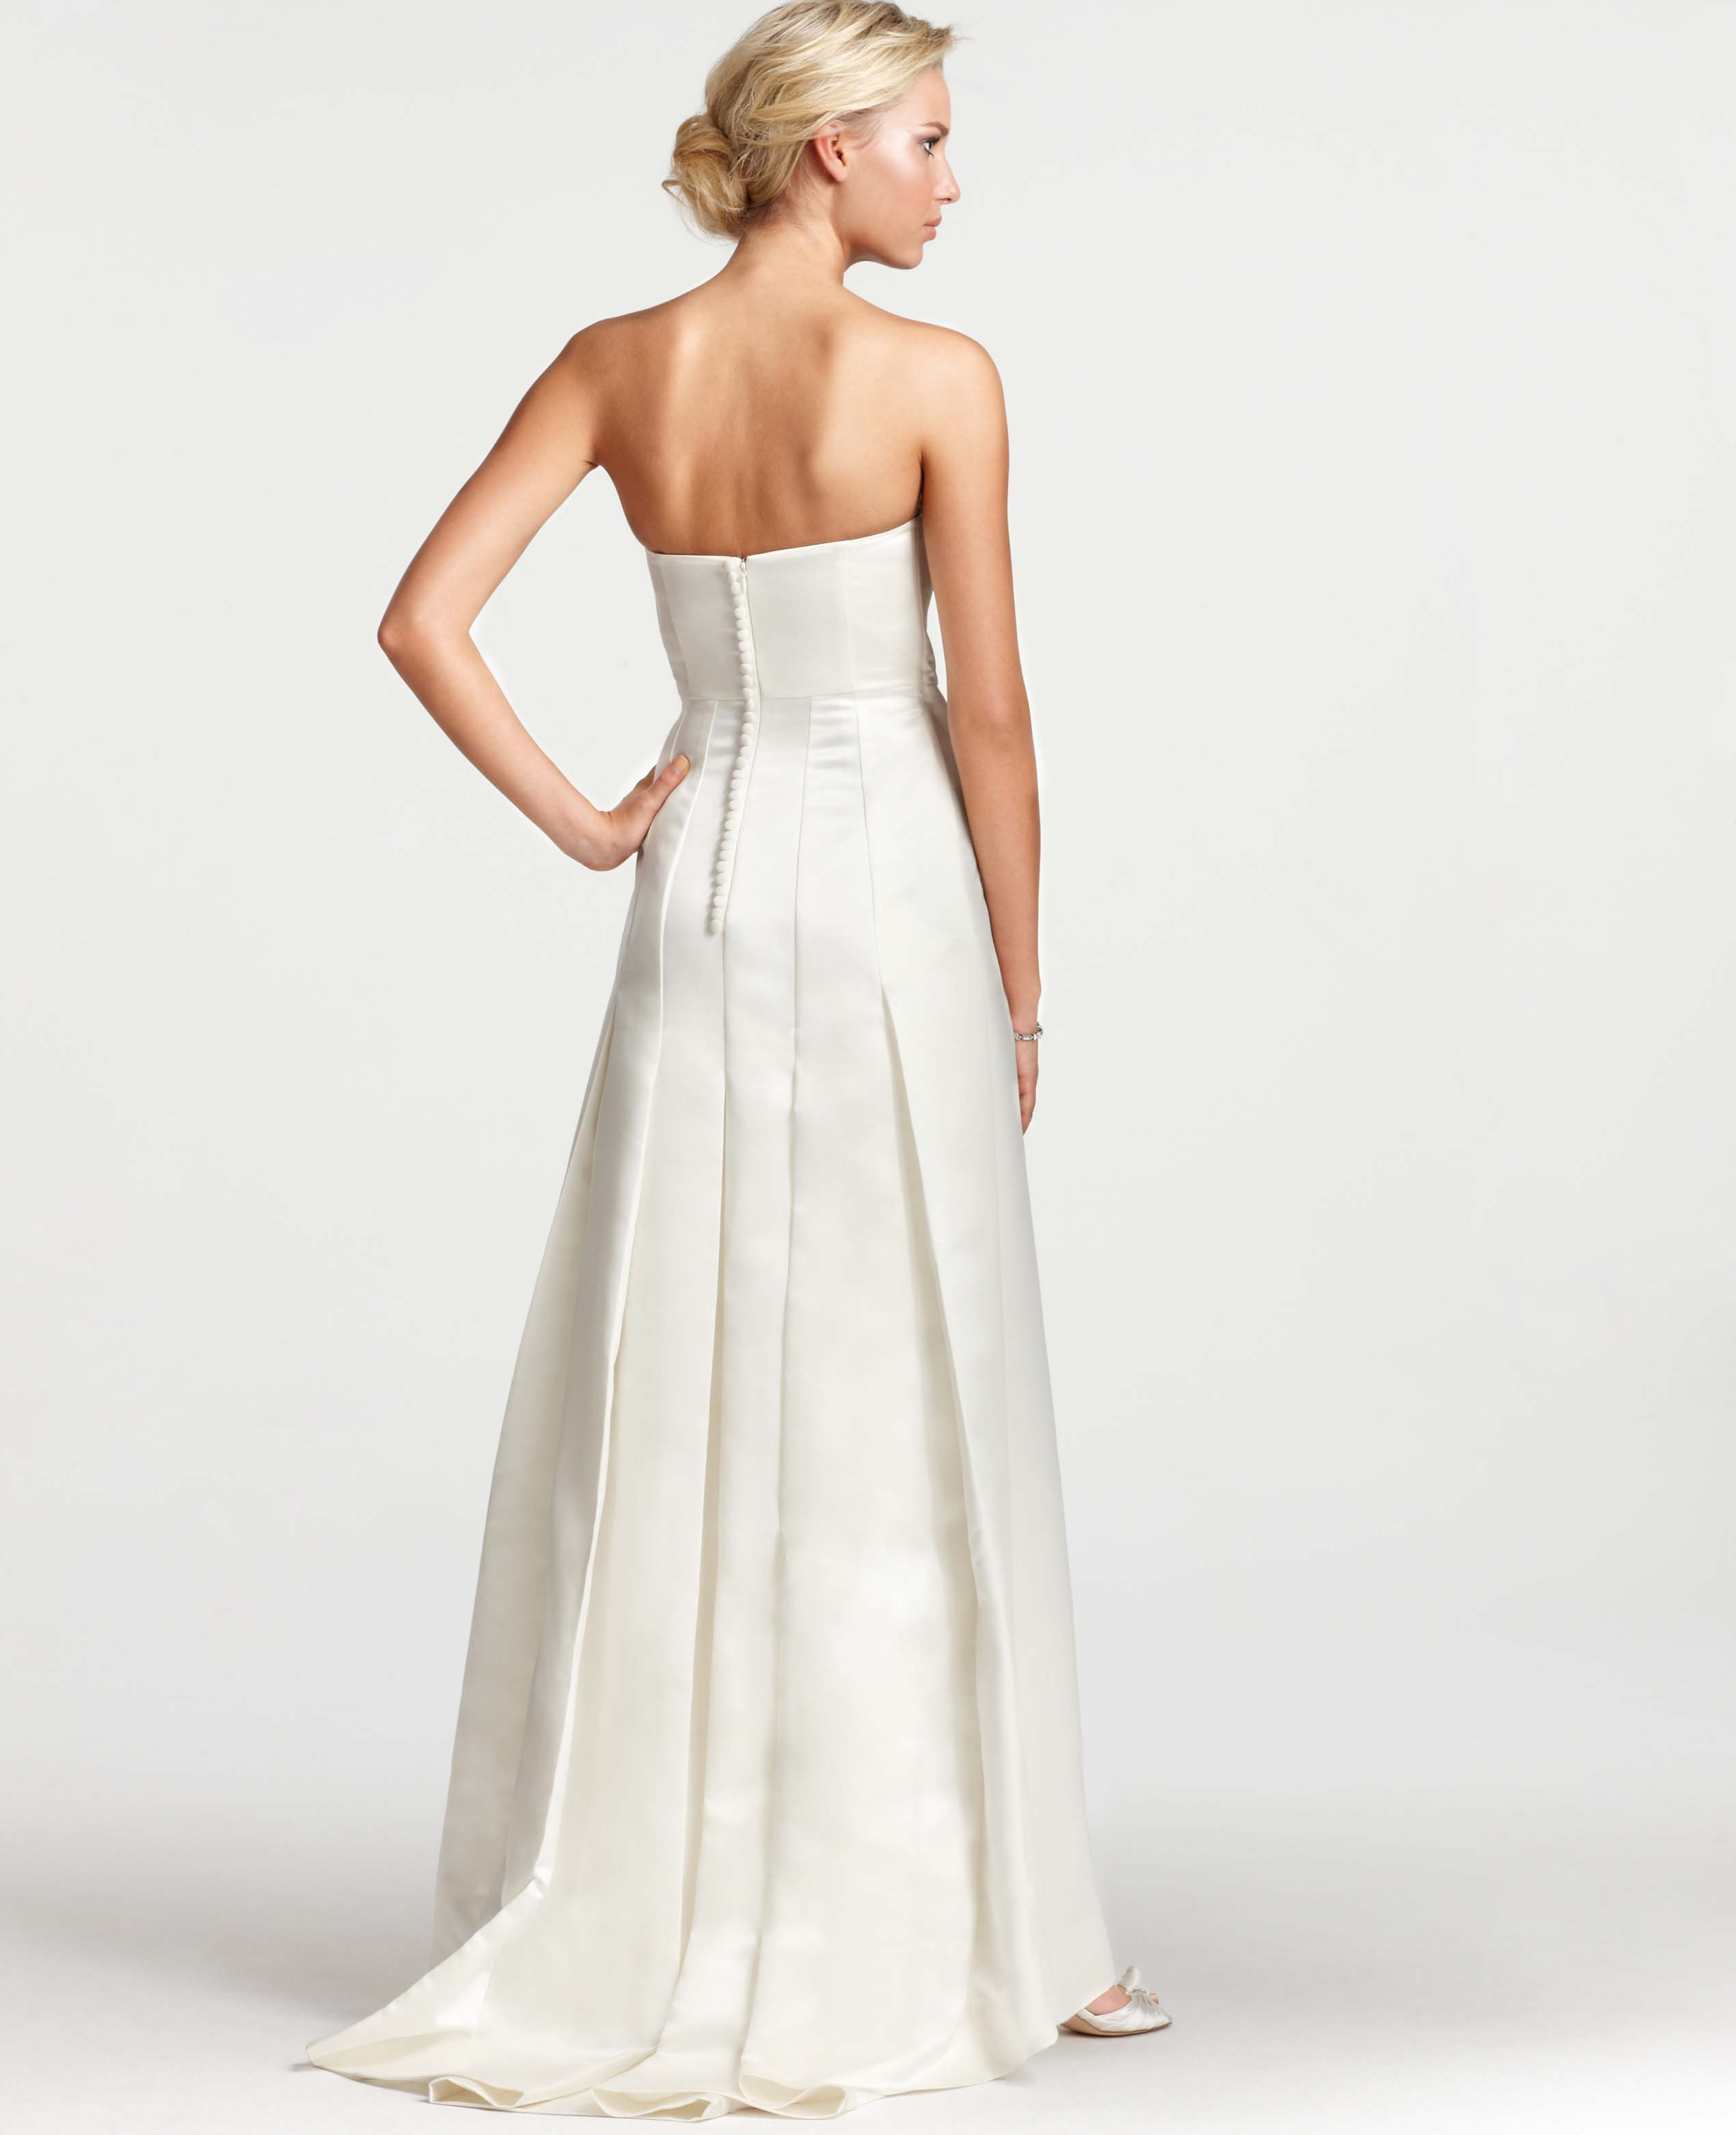 Lyst - Ann Taylor Layla Duchess Satin Strapless Wedding Dress in White